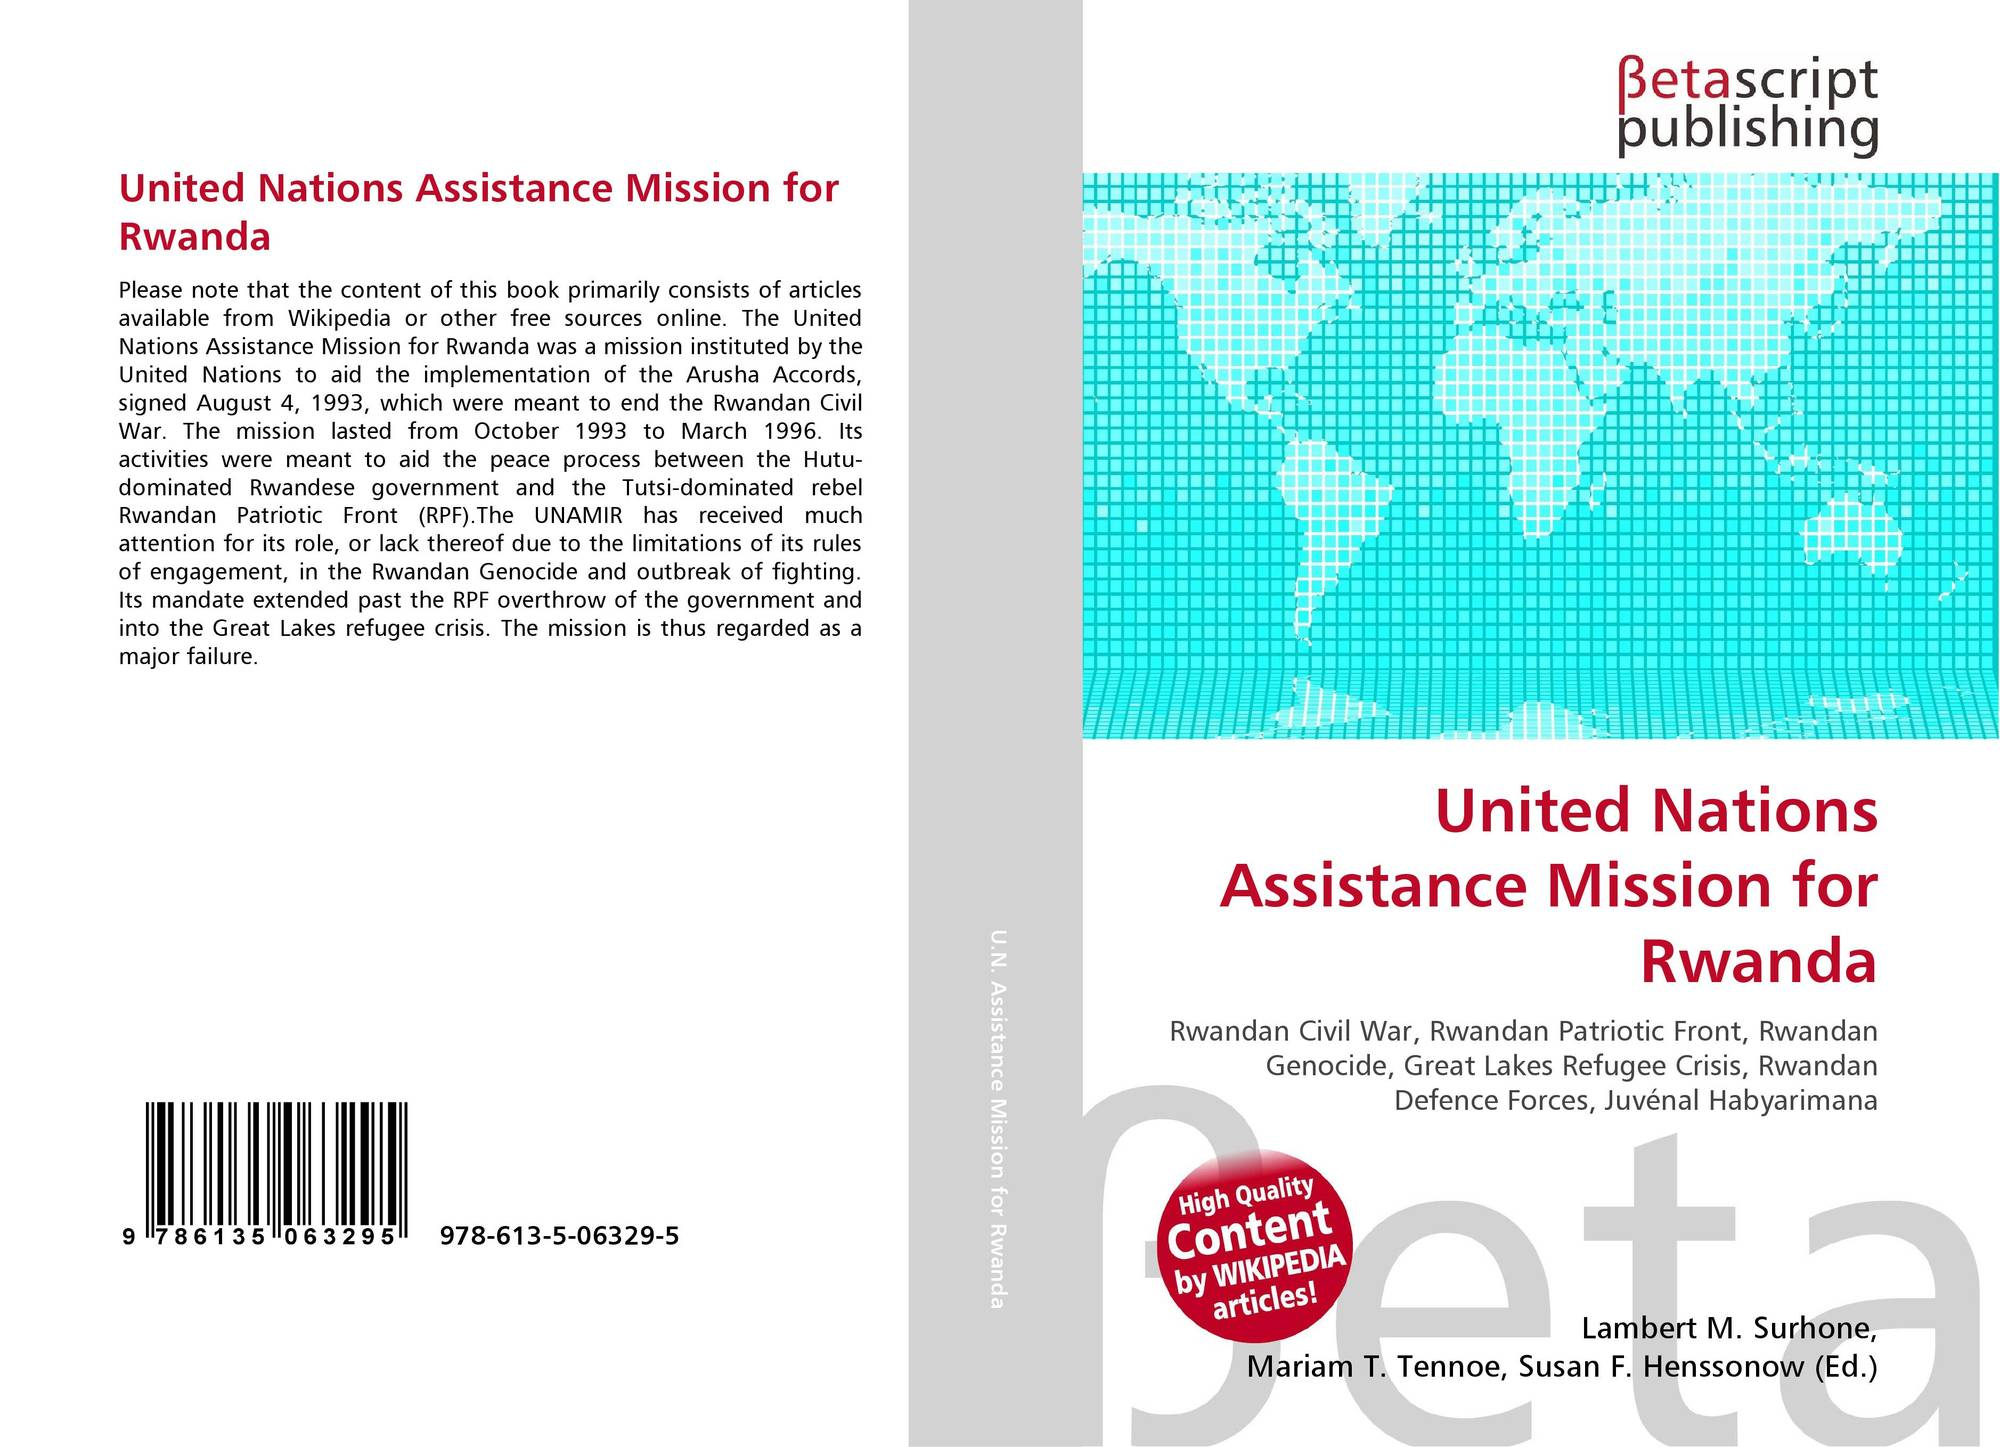 unamir united nations assistance mission for Amy davidson united nations assistance mission for rwanda this essay will aim to discuss, in depth, the, united nations assistance mission for rwanda (unamir) that took place in rwanda in 1994.